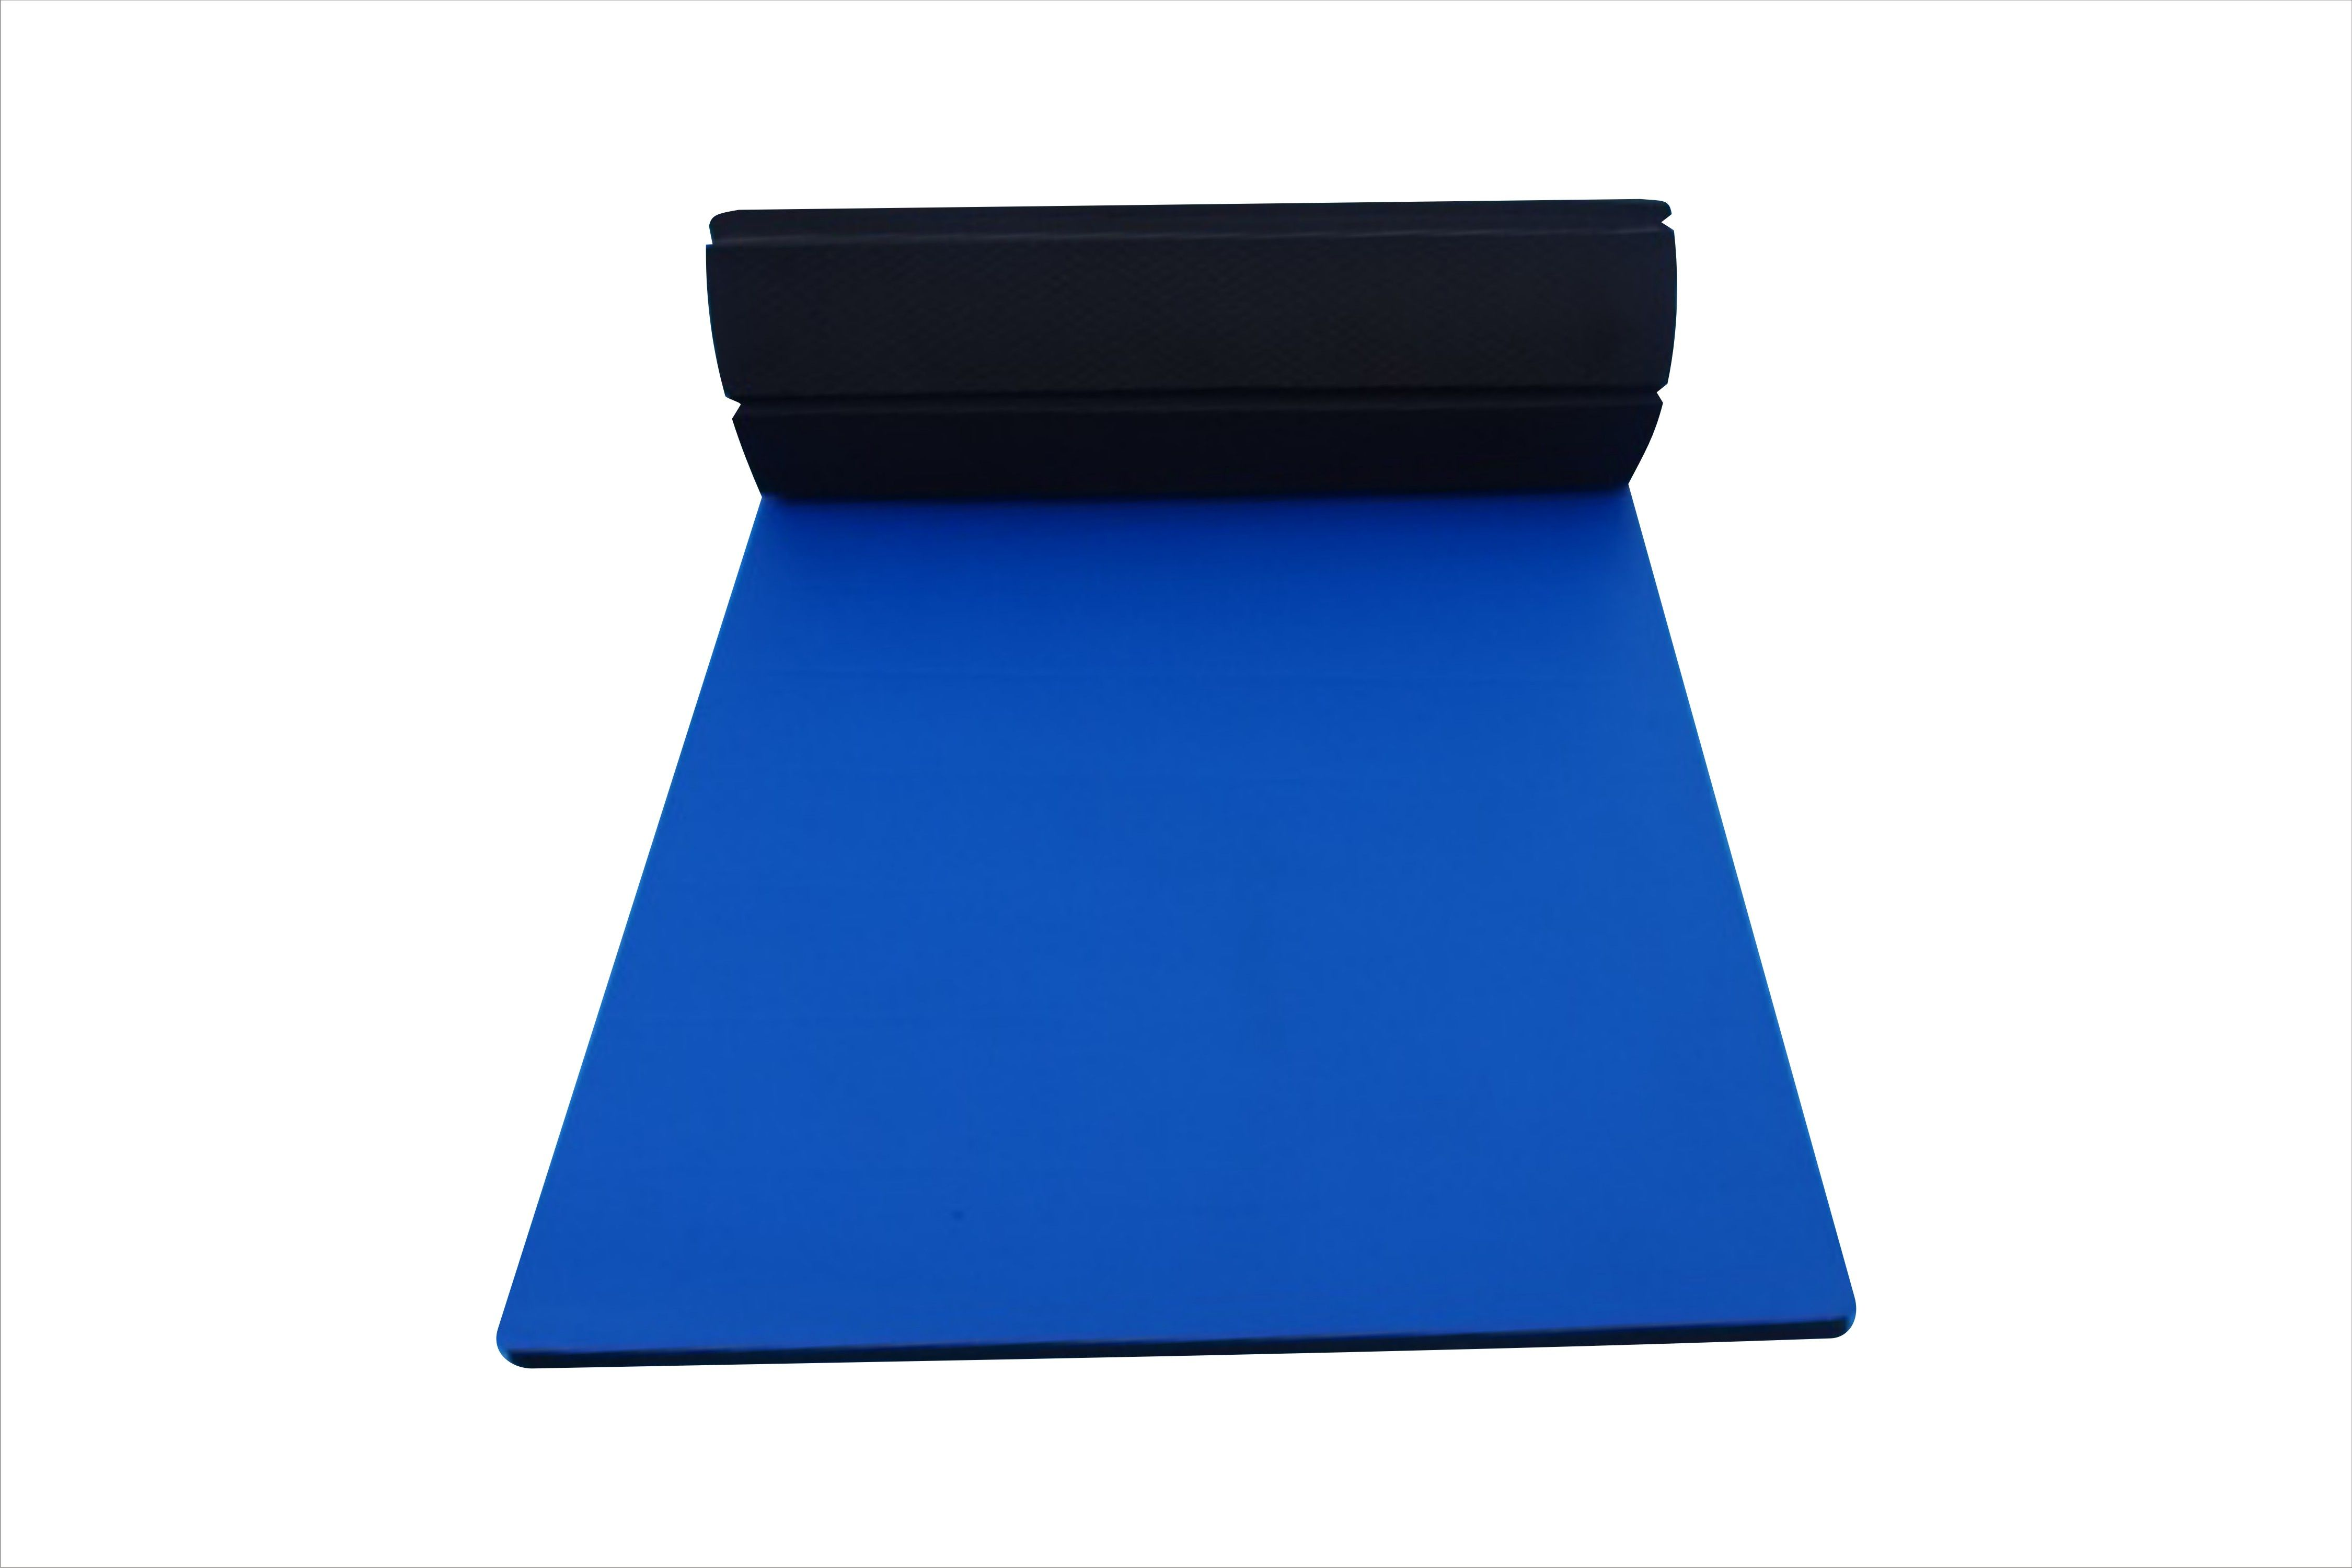 for track mats outdoor tumble inflatable gymnastics gym aeor gymnastic cheap used detail air product